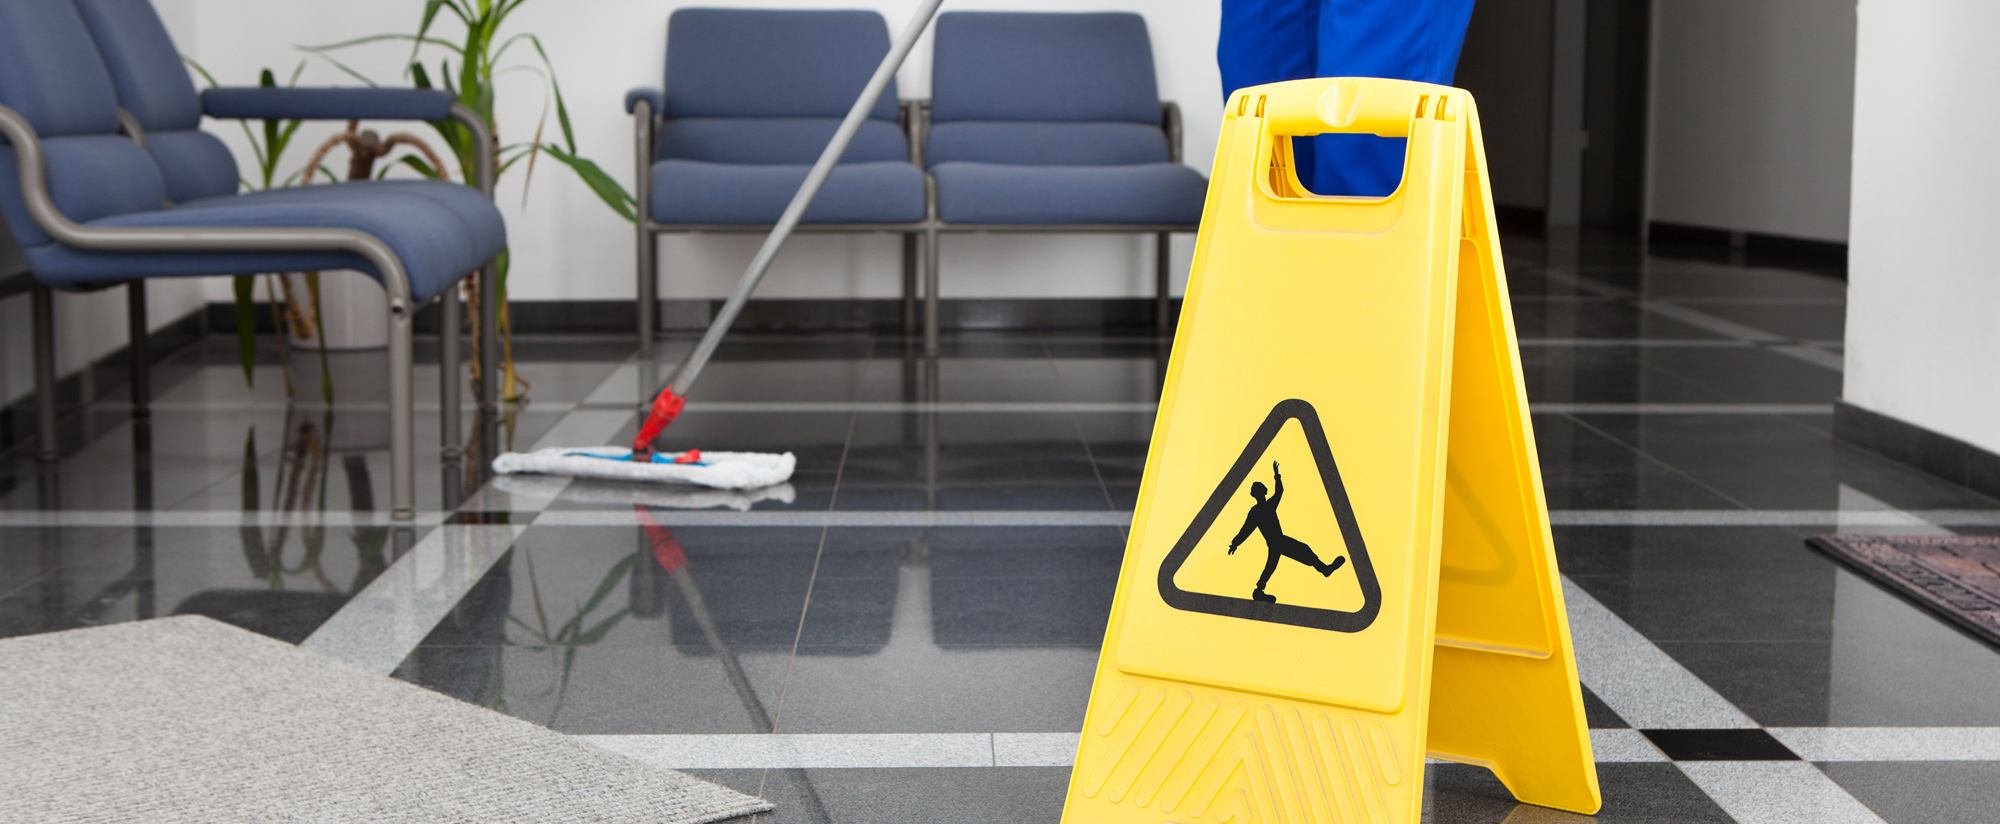 Trusted commercial cleaning service in Honolulu, HI